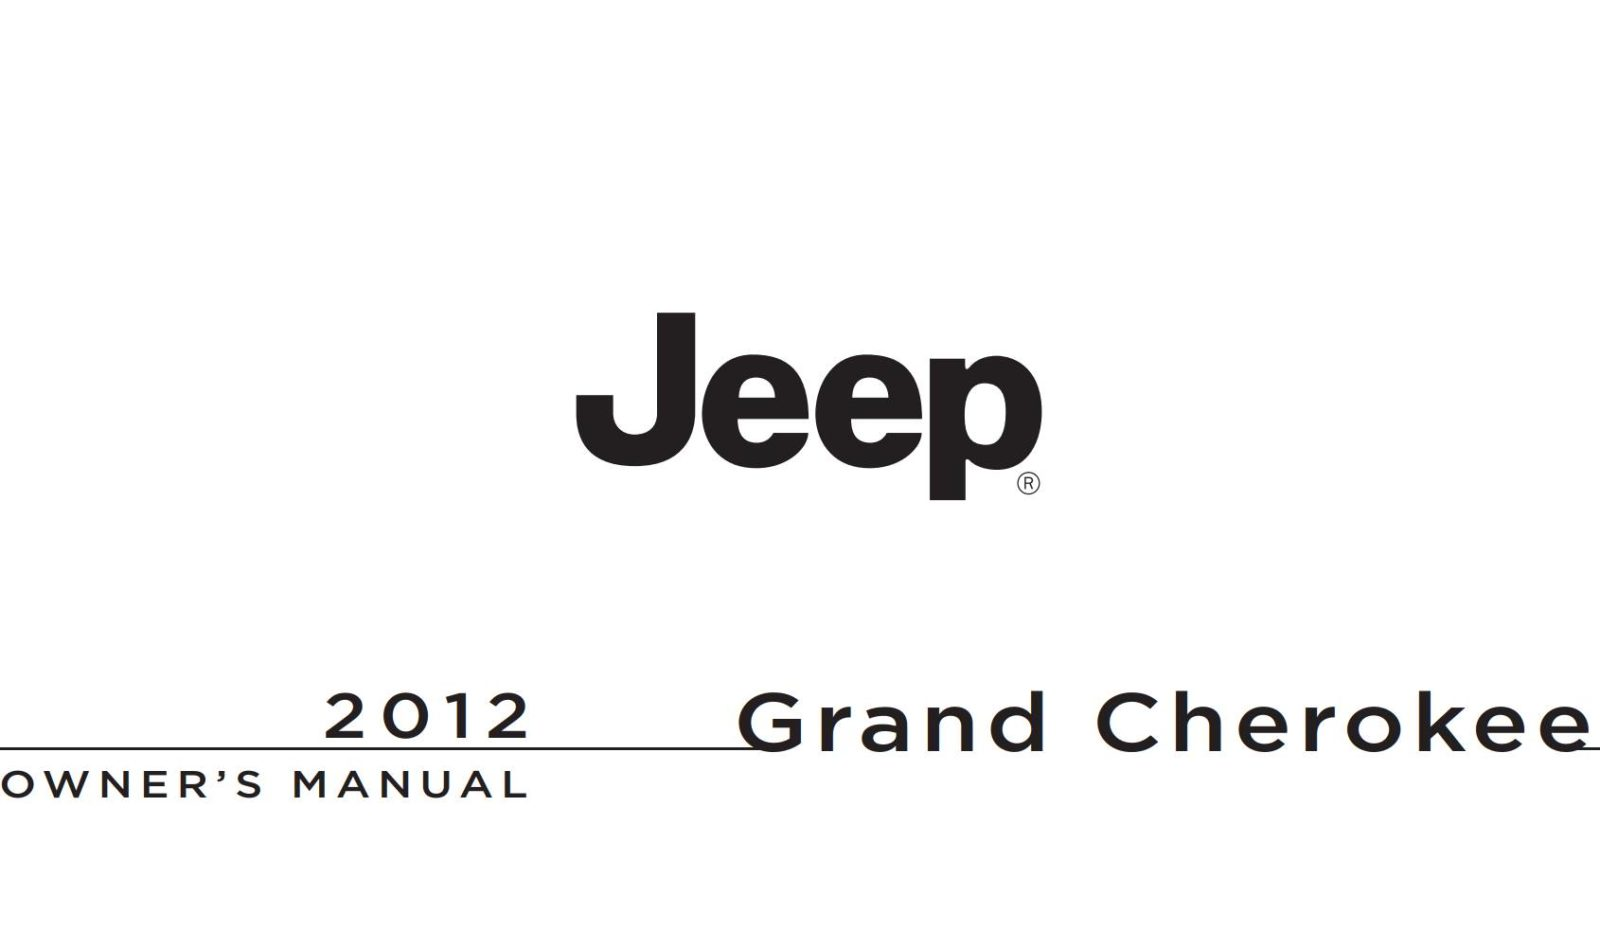 Jeep Grand Cherokee Ulx9 2012 Owner's Manual